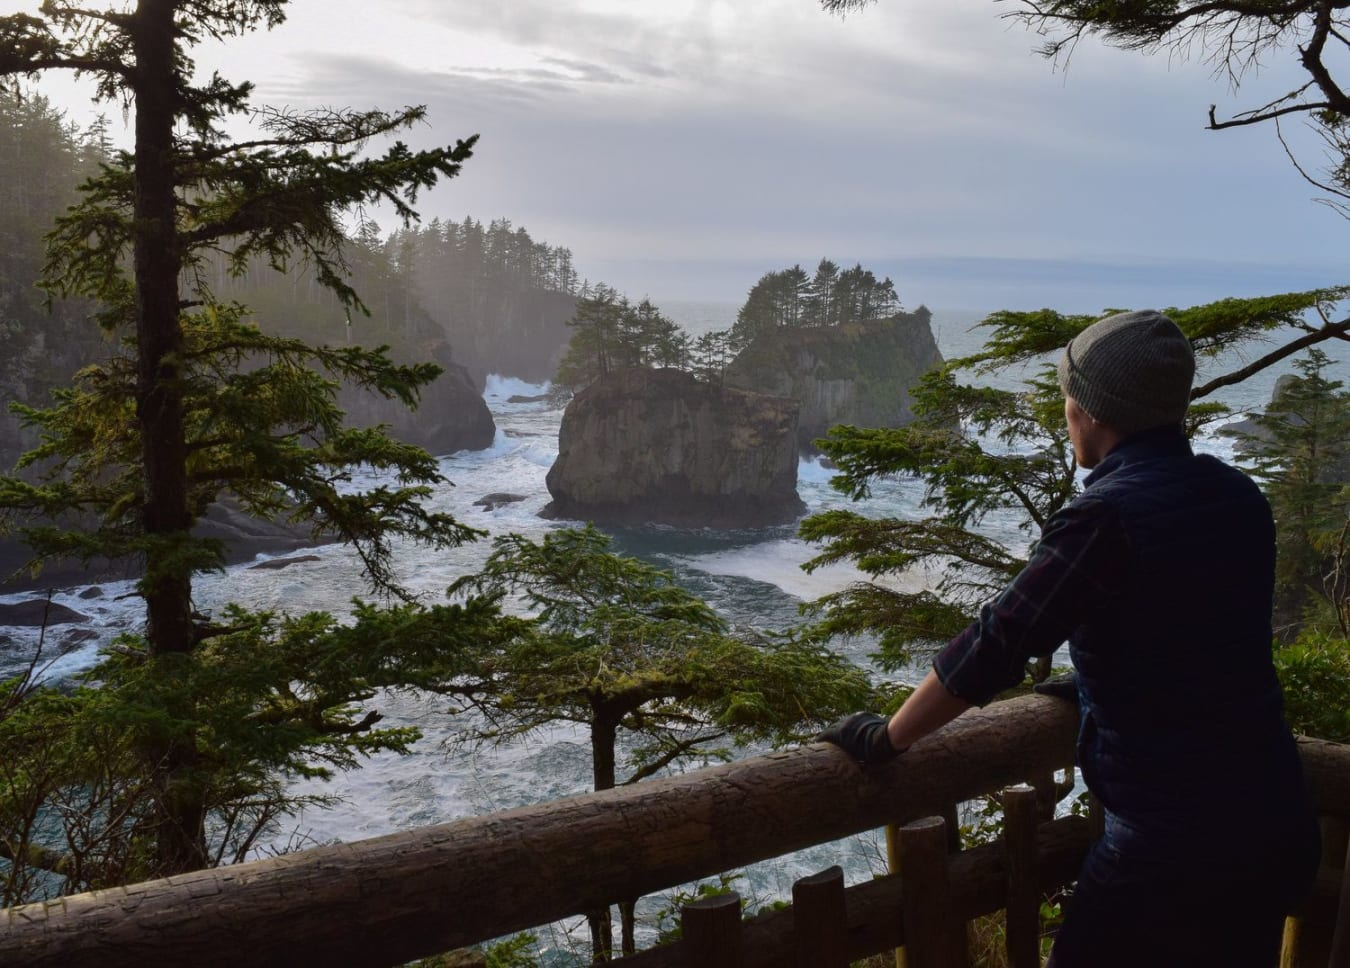 Puget Sound and Olympic Peninsula VIP Adventure 6-day